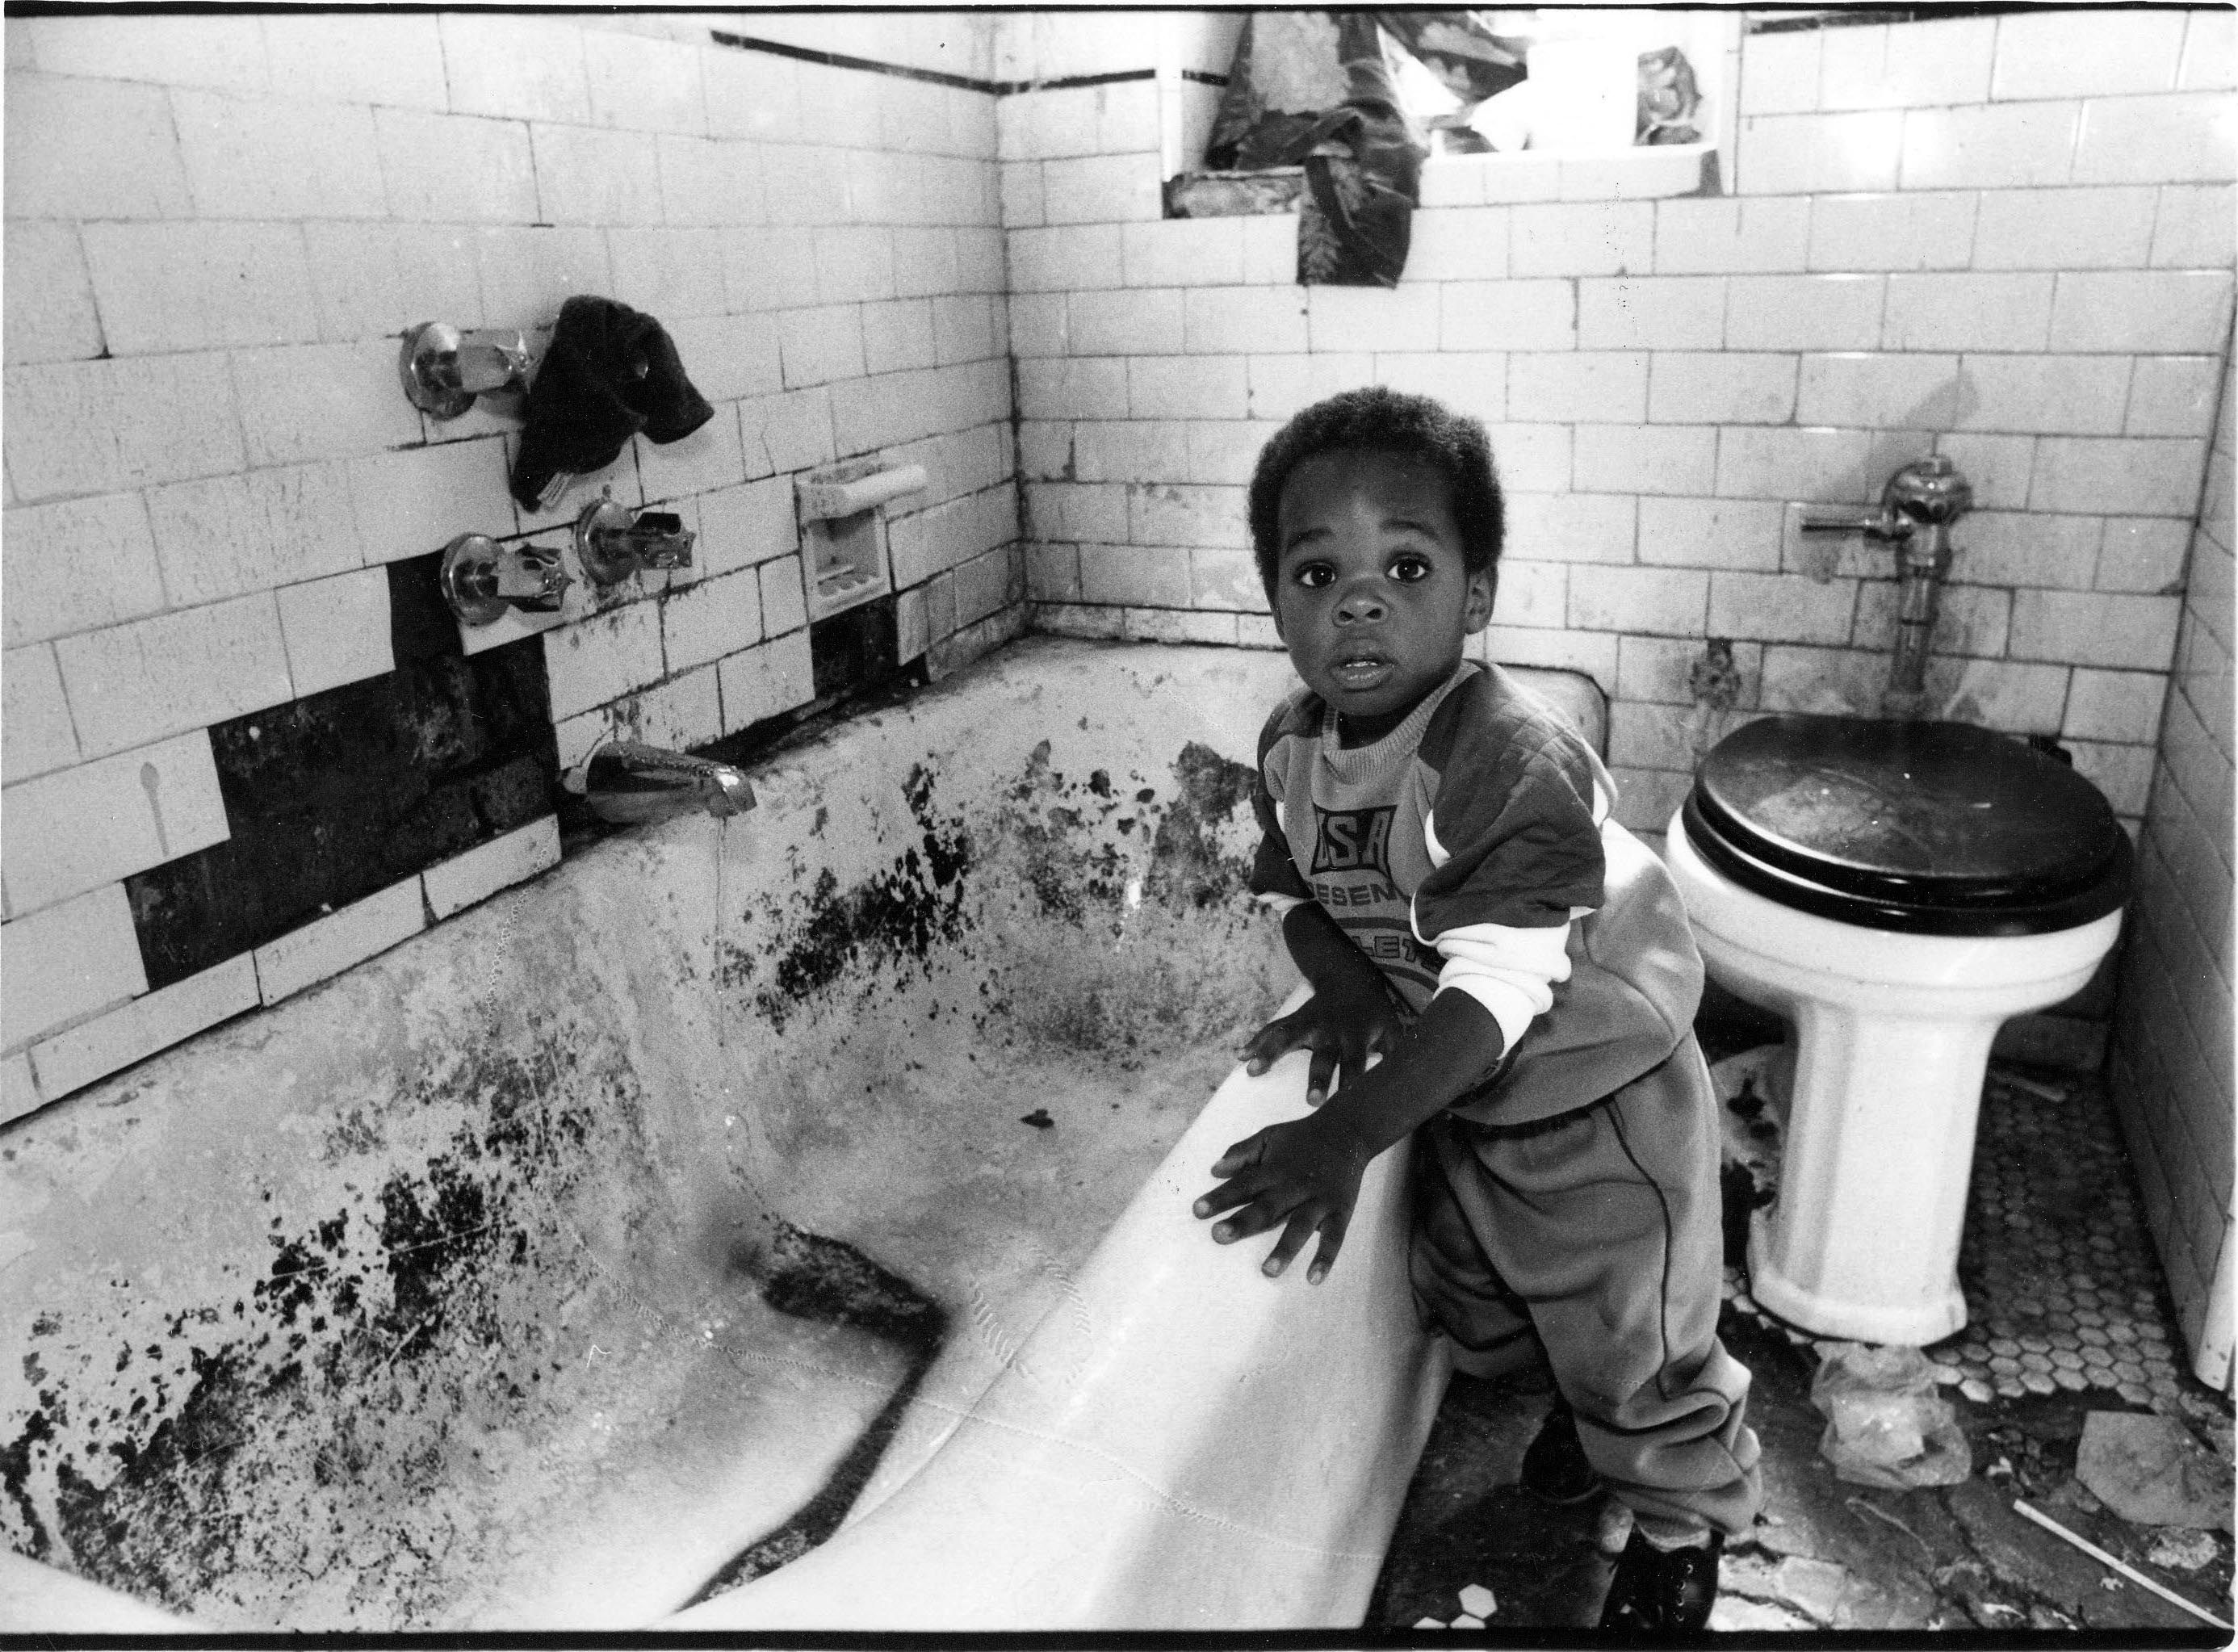 Pin By Pinning Addict On Life In Black White Homeless Children Community Outreach Ignorant People